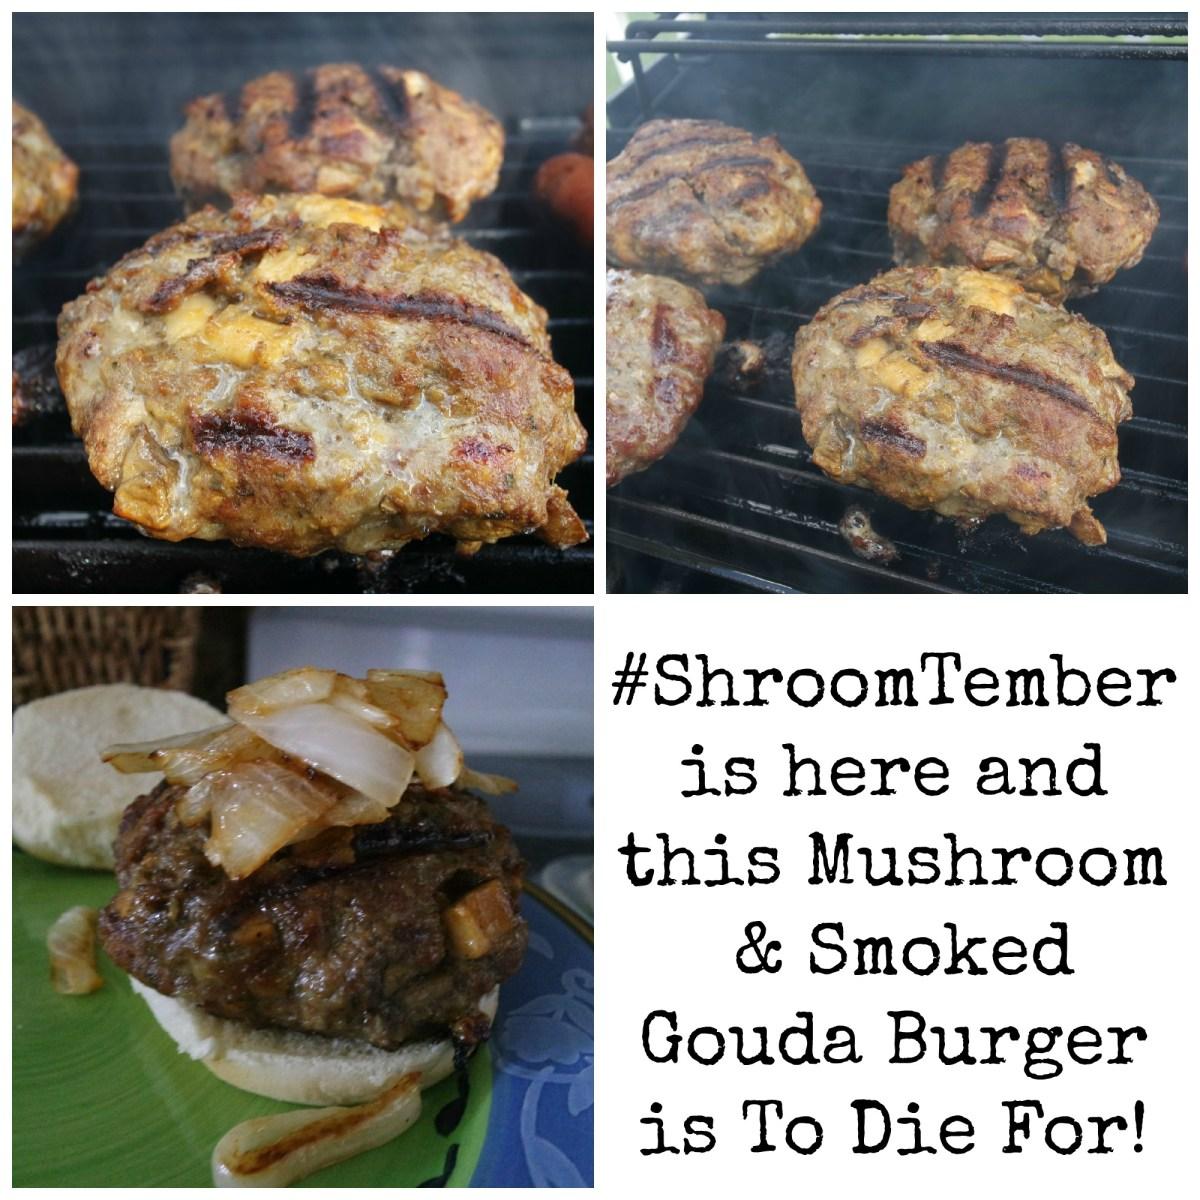 Creating the Ultimate Burger Using Mushrooms! #shroomtember